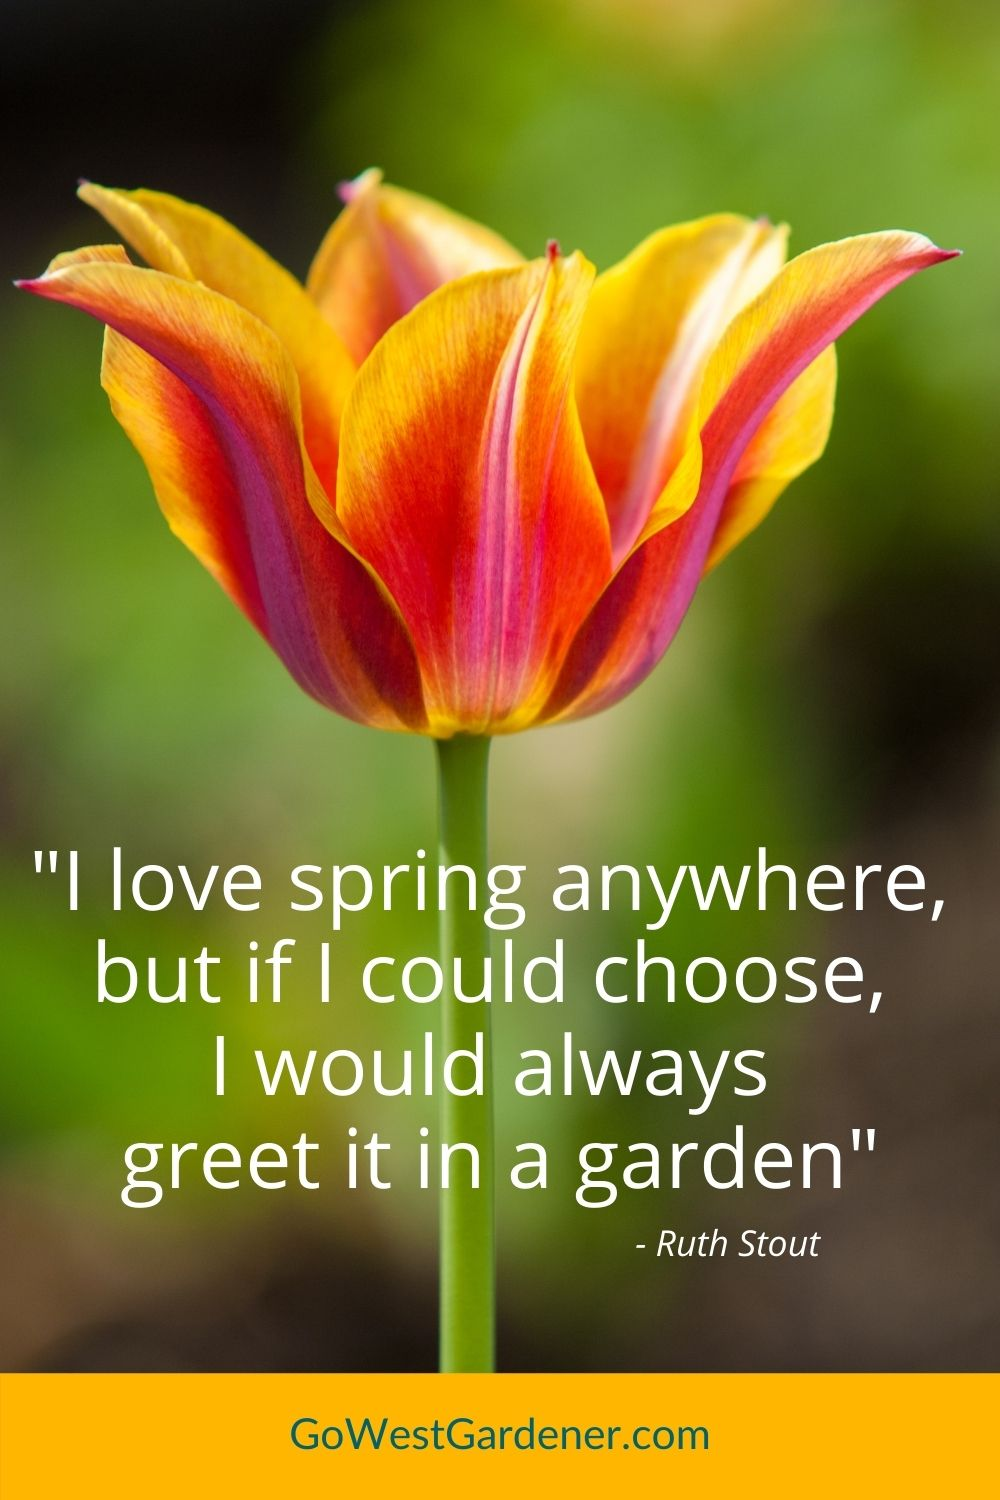 """Flower garden quote - """"I love spring everywhere, but if I could choose, I would always greet it in a garden"""" - Ruth Stout"""